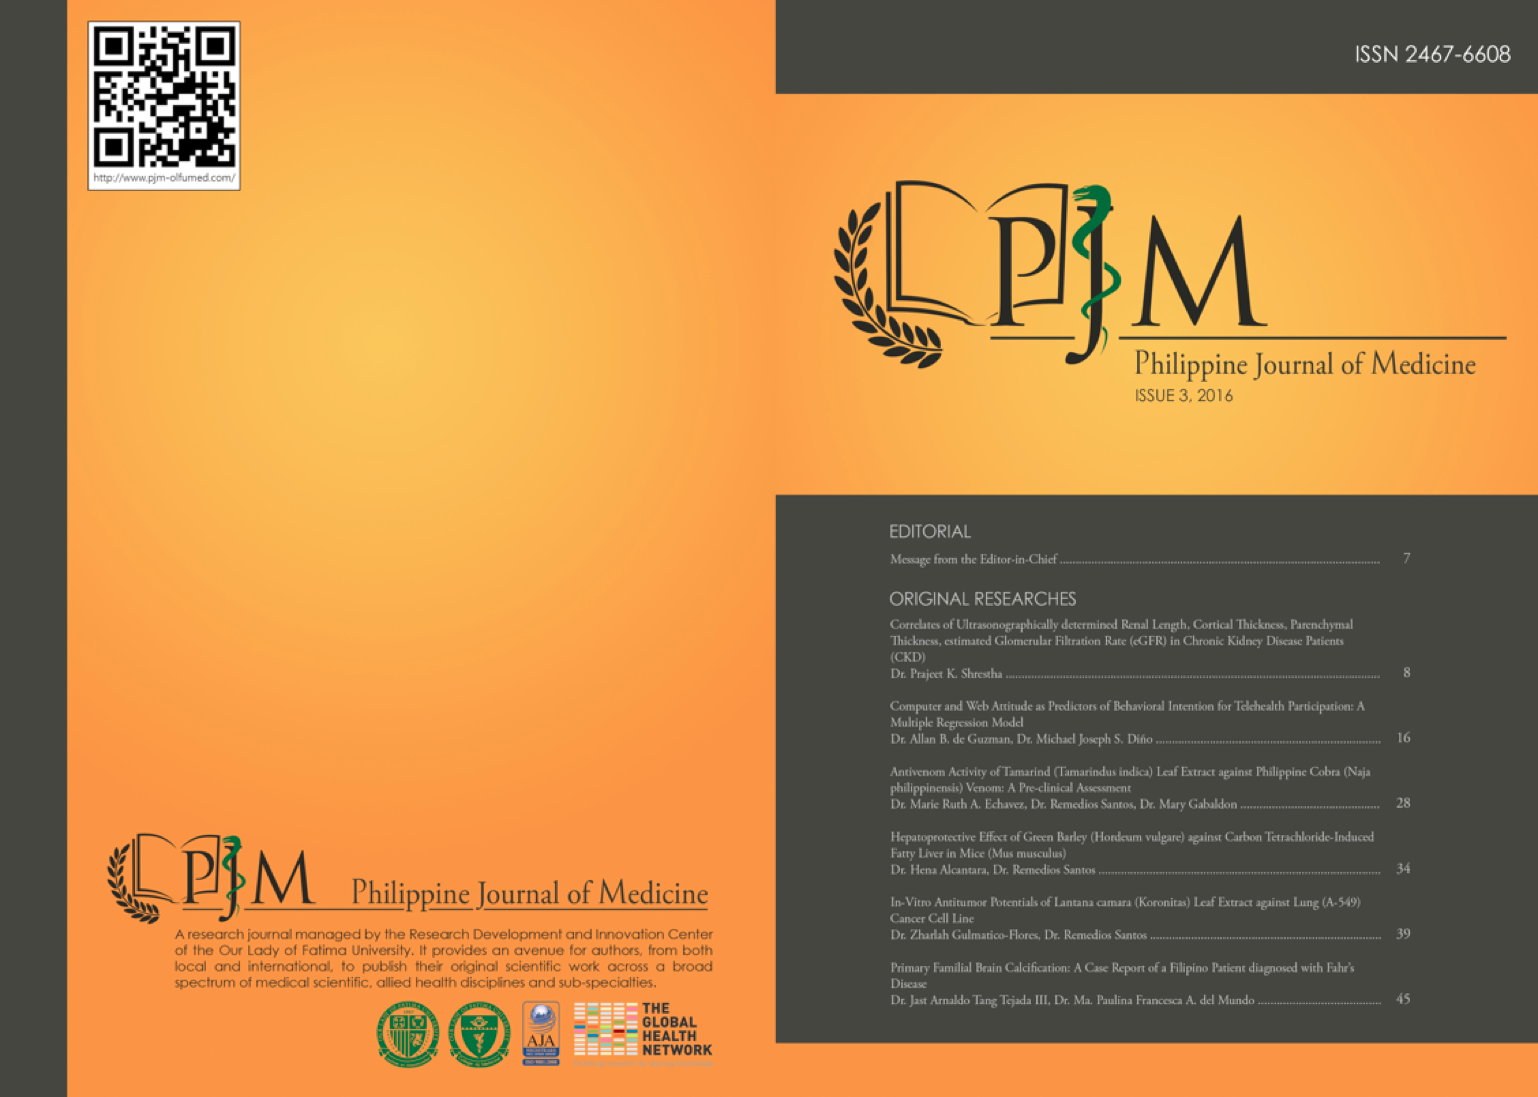 PHILIPPINE JOURNAL OF MEDICINE